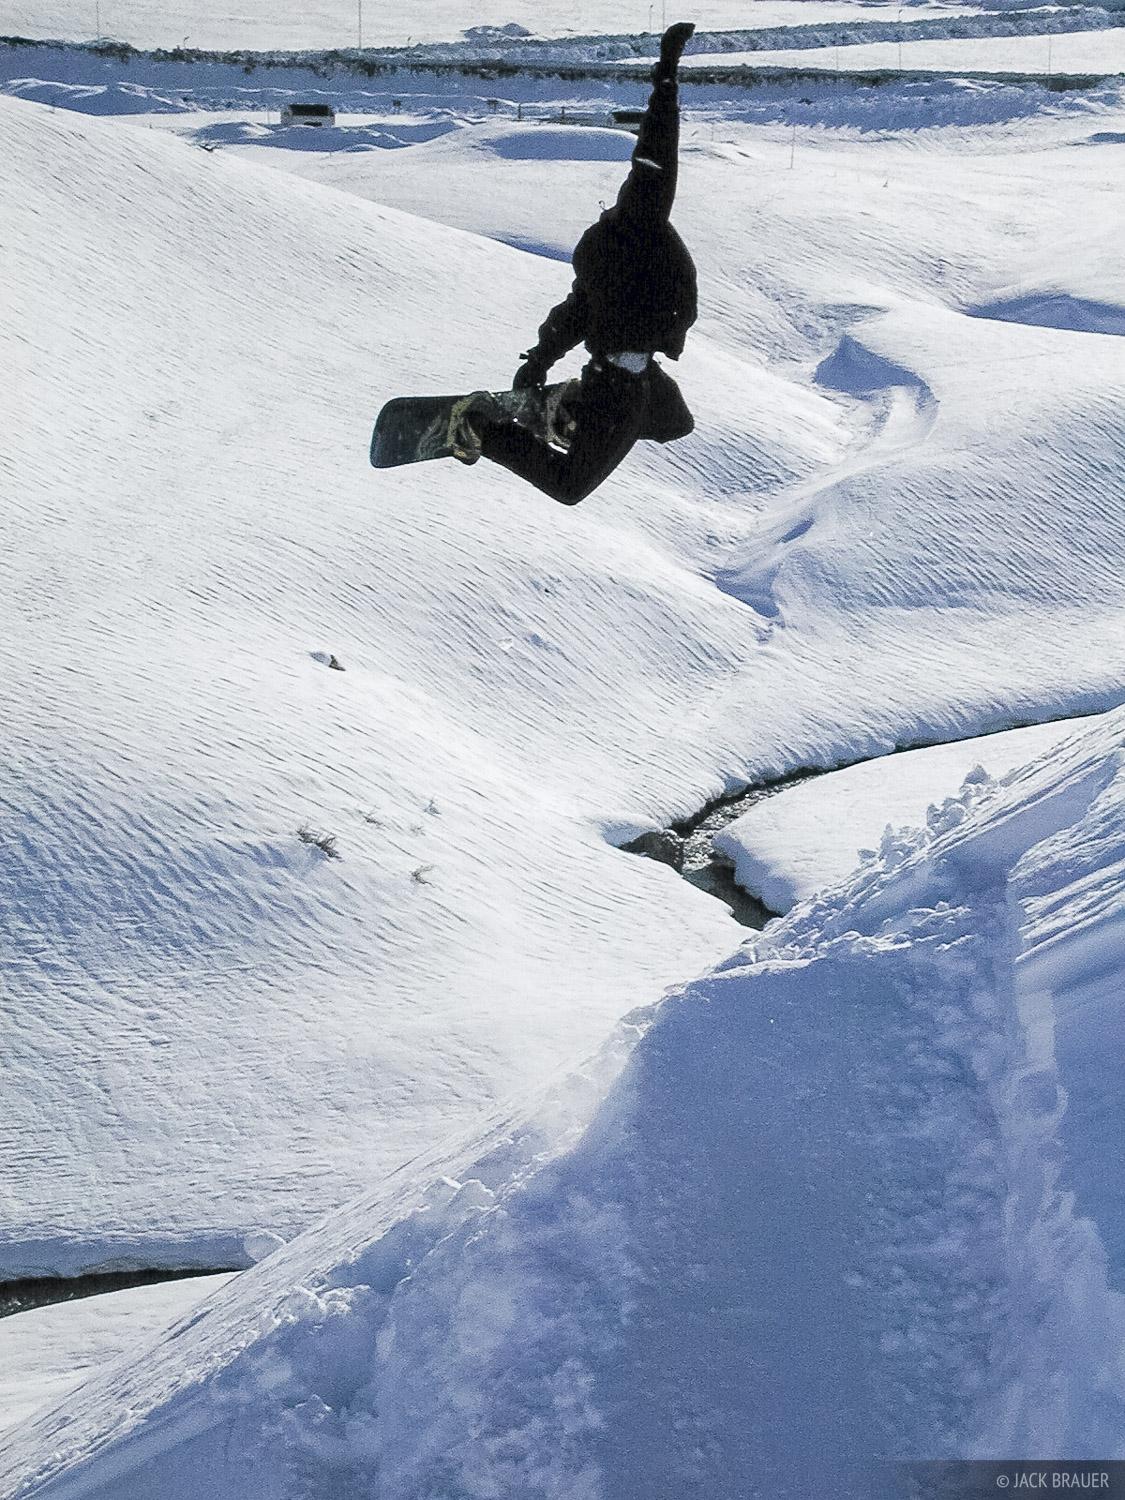 Method Air, Argentina, snowboarding, Las Leñas, photo